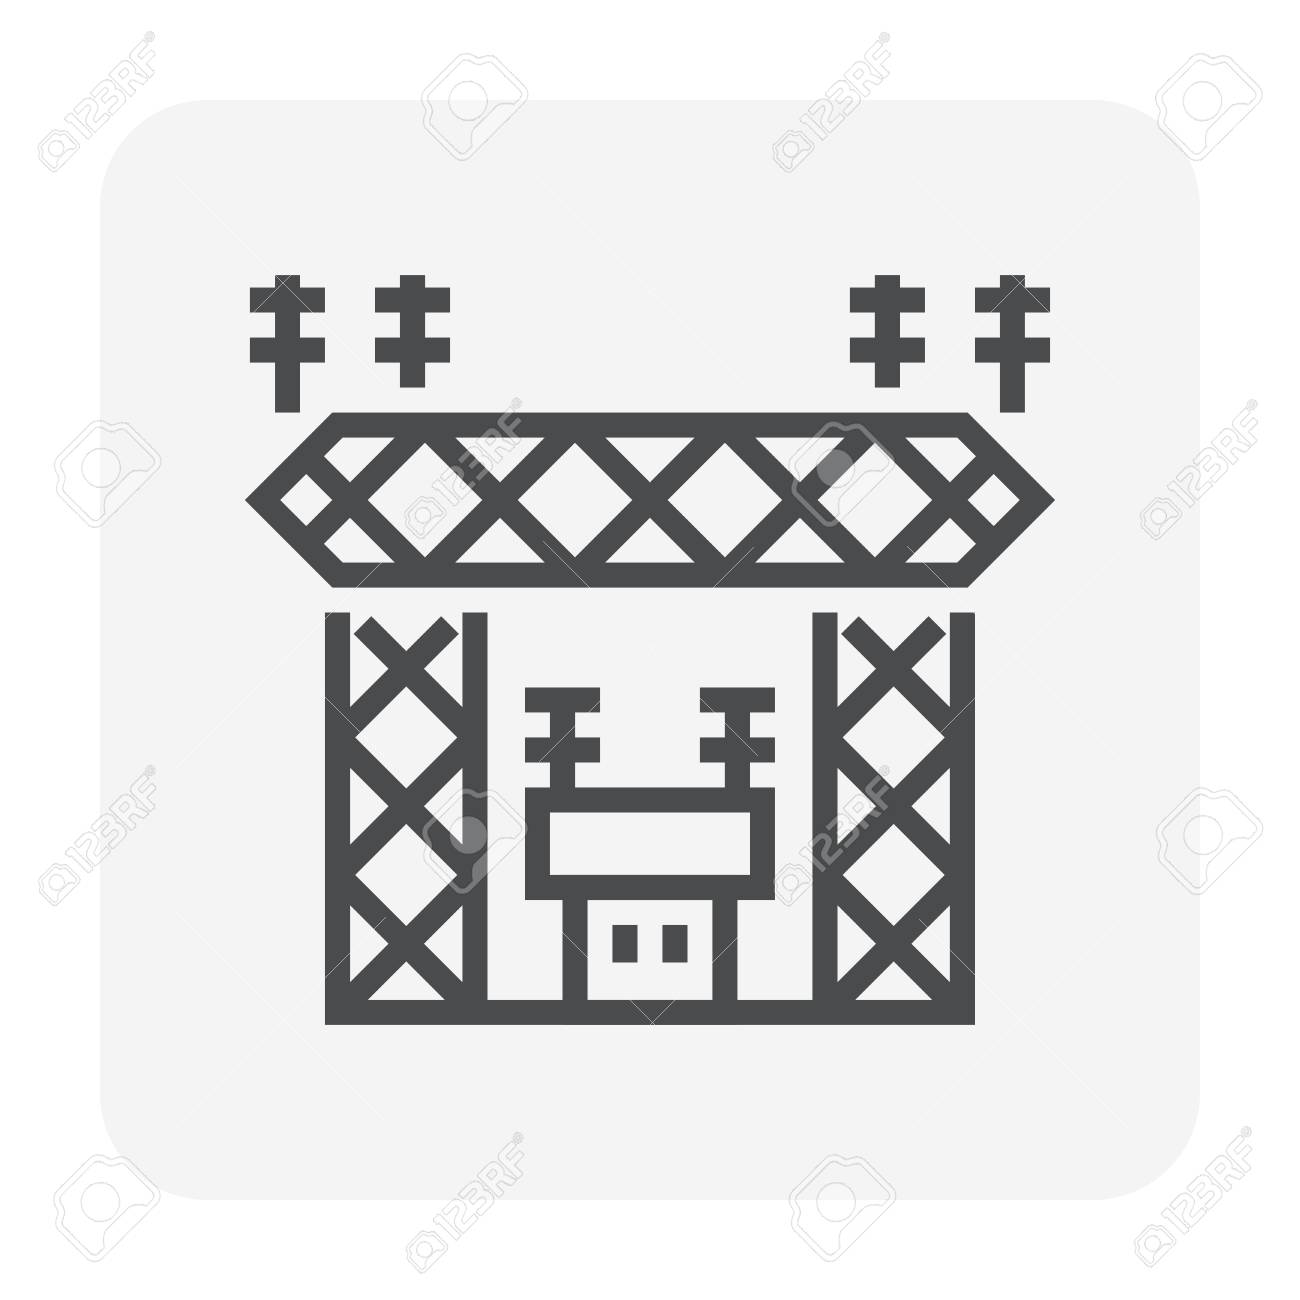 Transmission Tower And Transformer Icon Design For Distribute